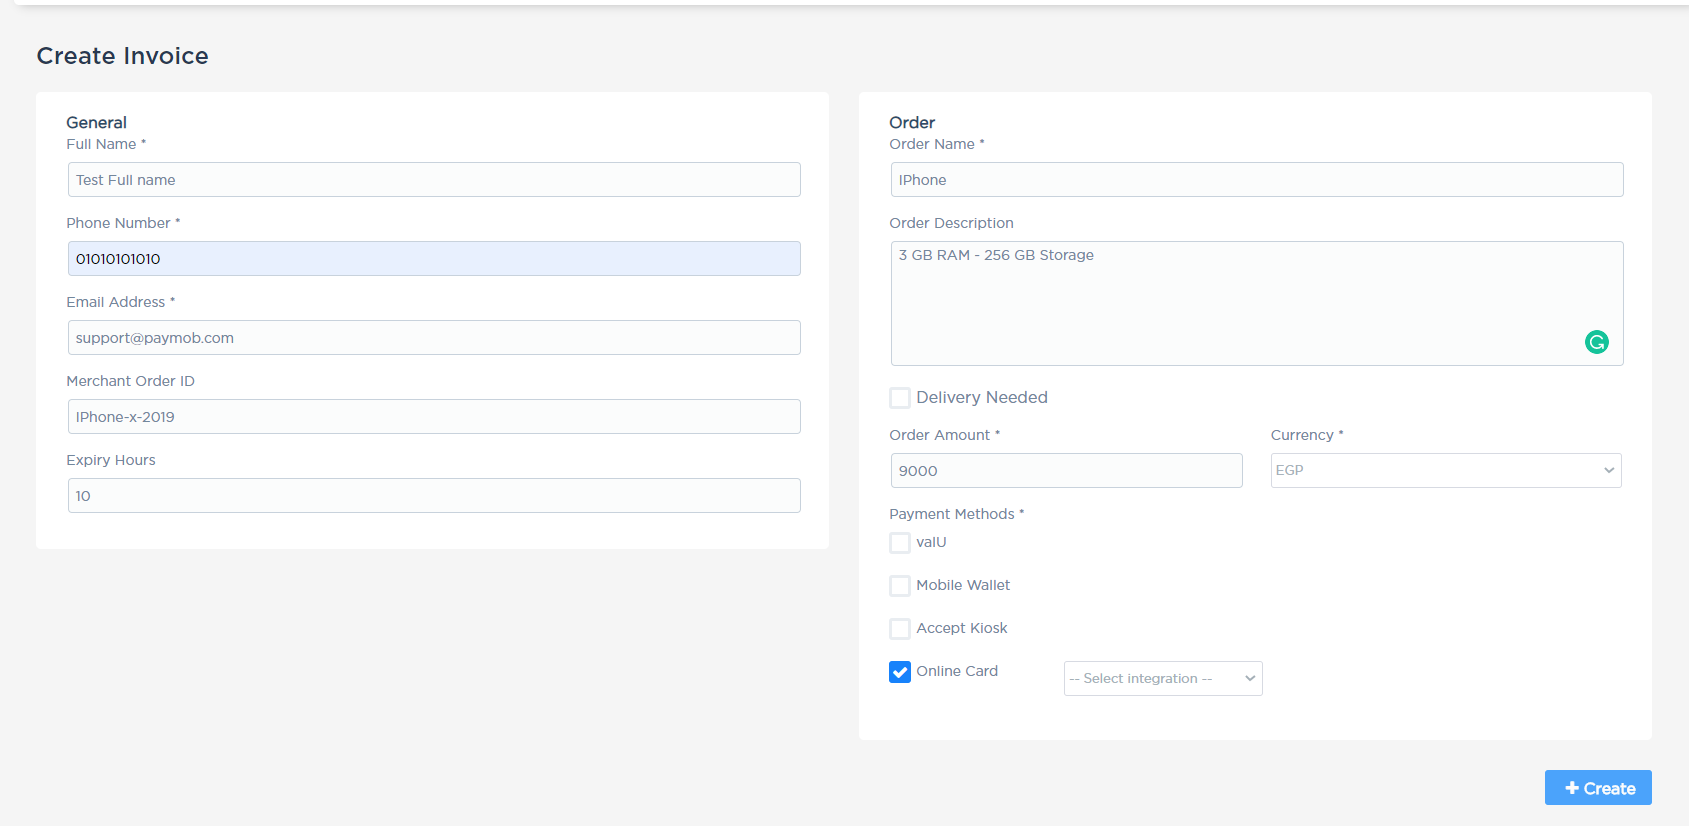 Accept dashboard - Invoice Creation Details.